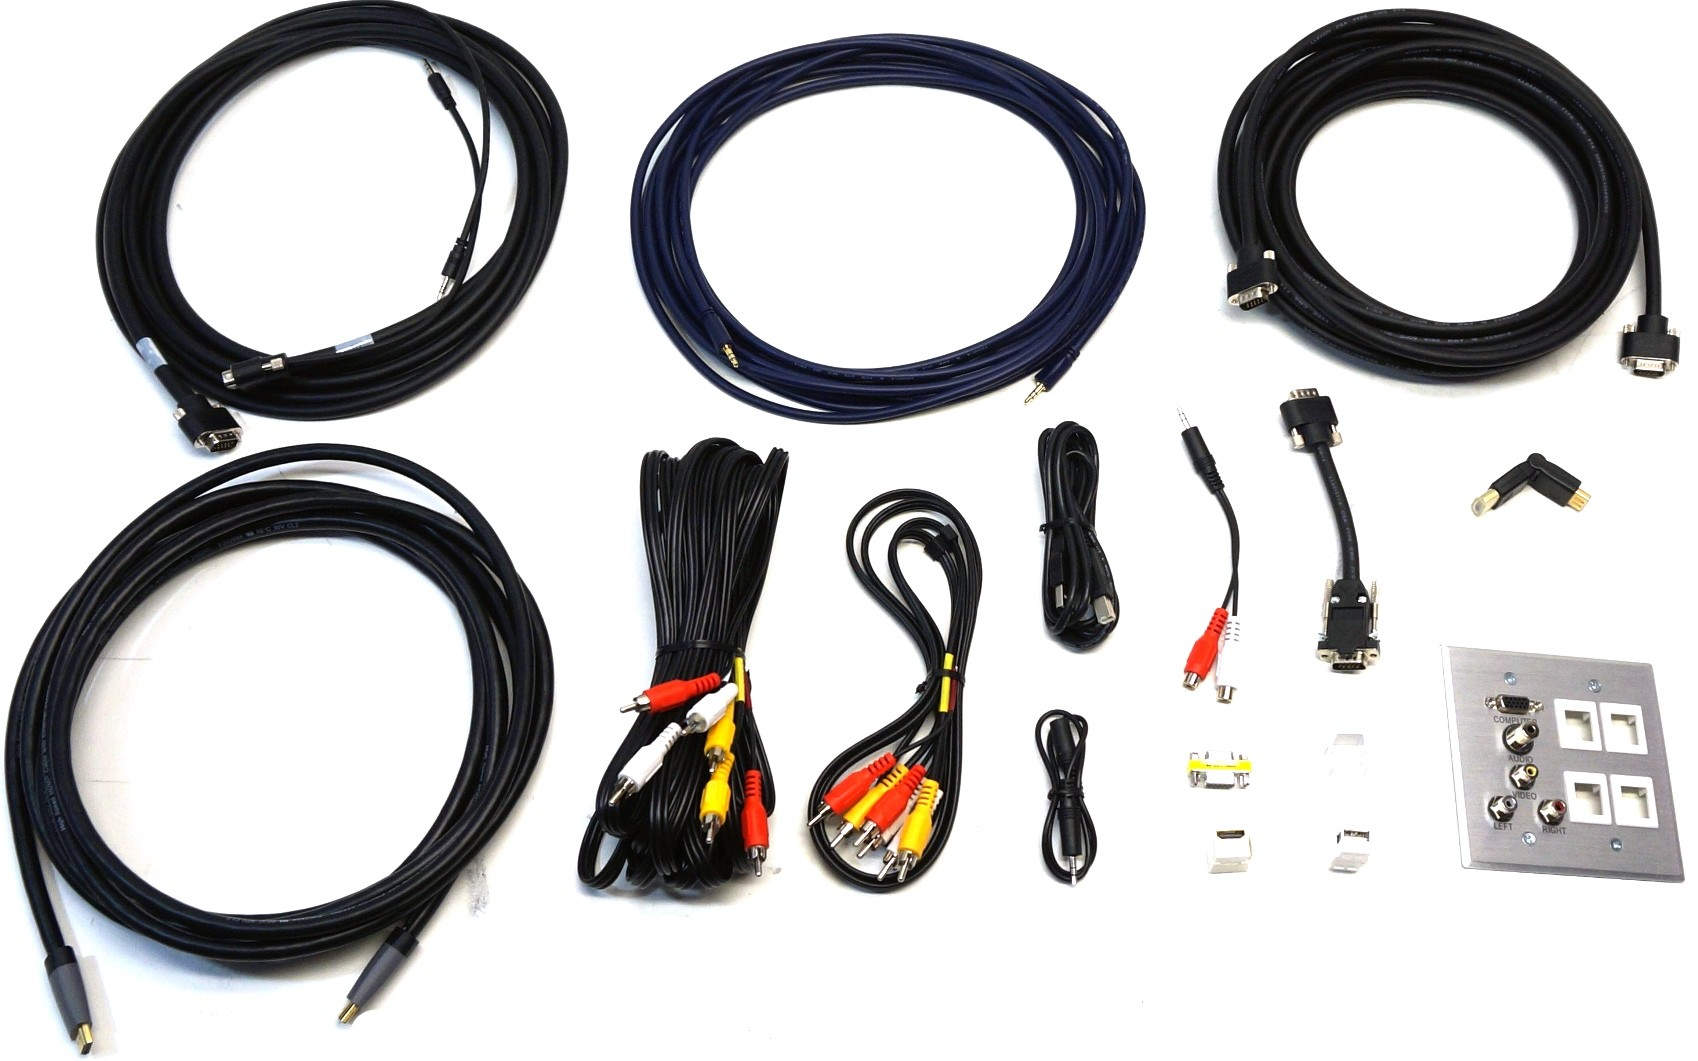 C2G 7055808 Brightlink 485WI Cable Kit